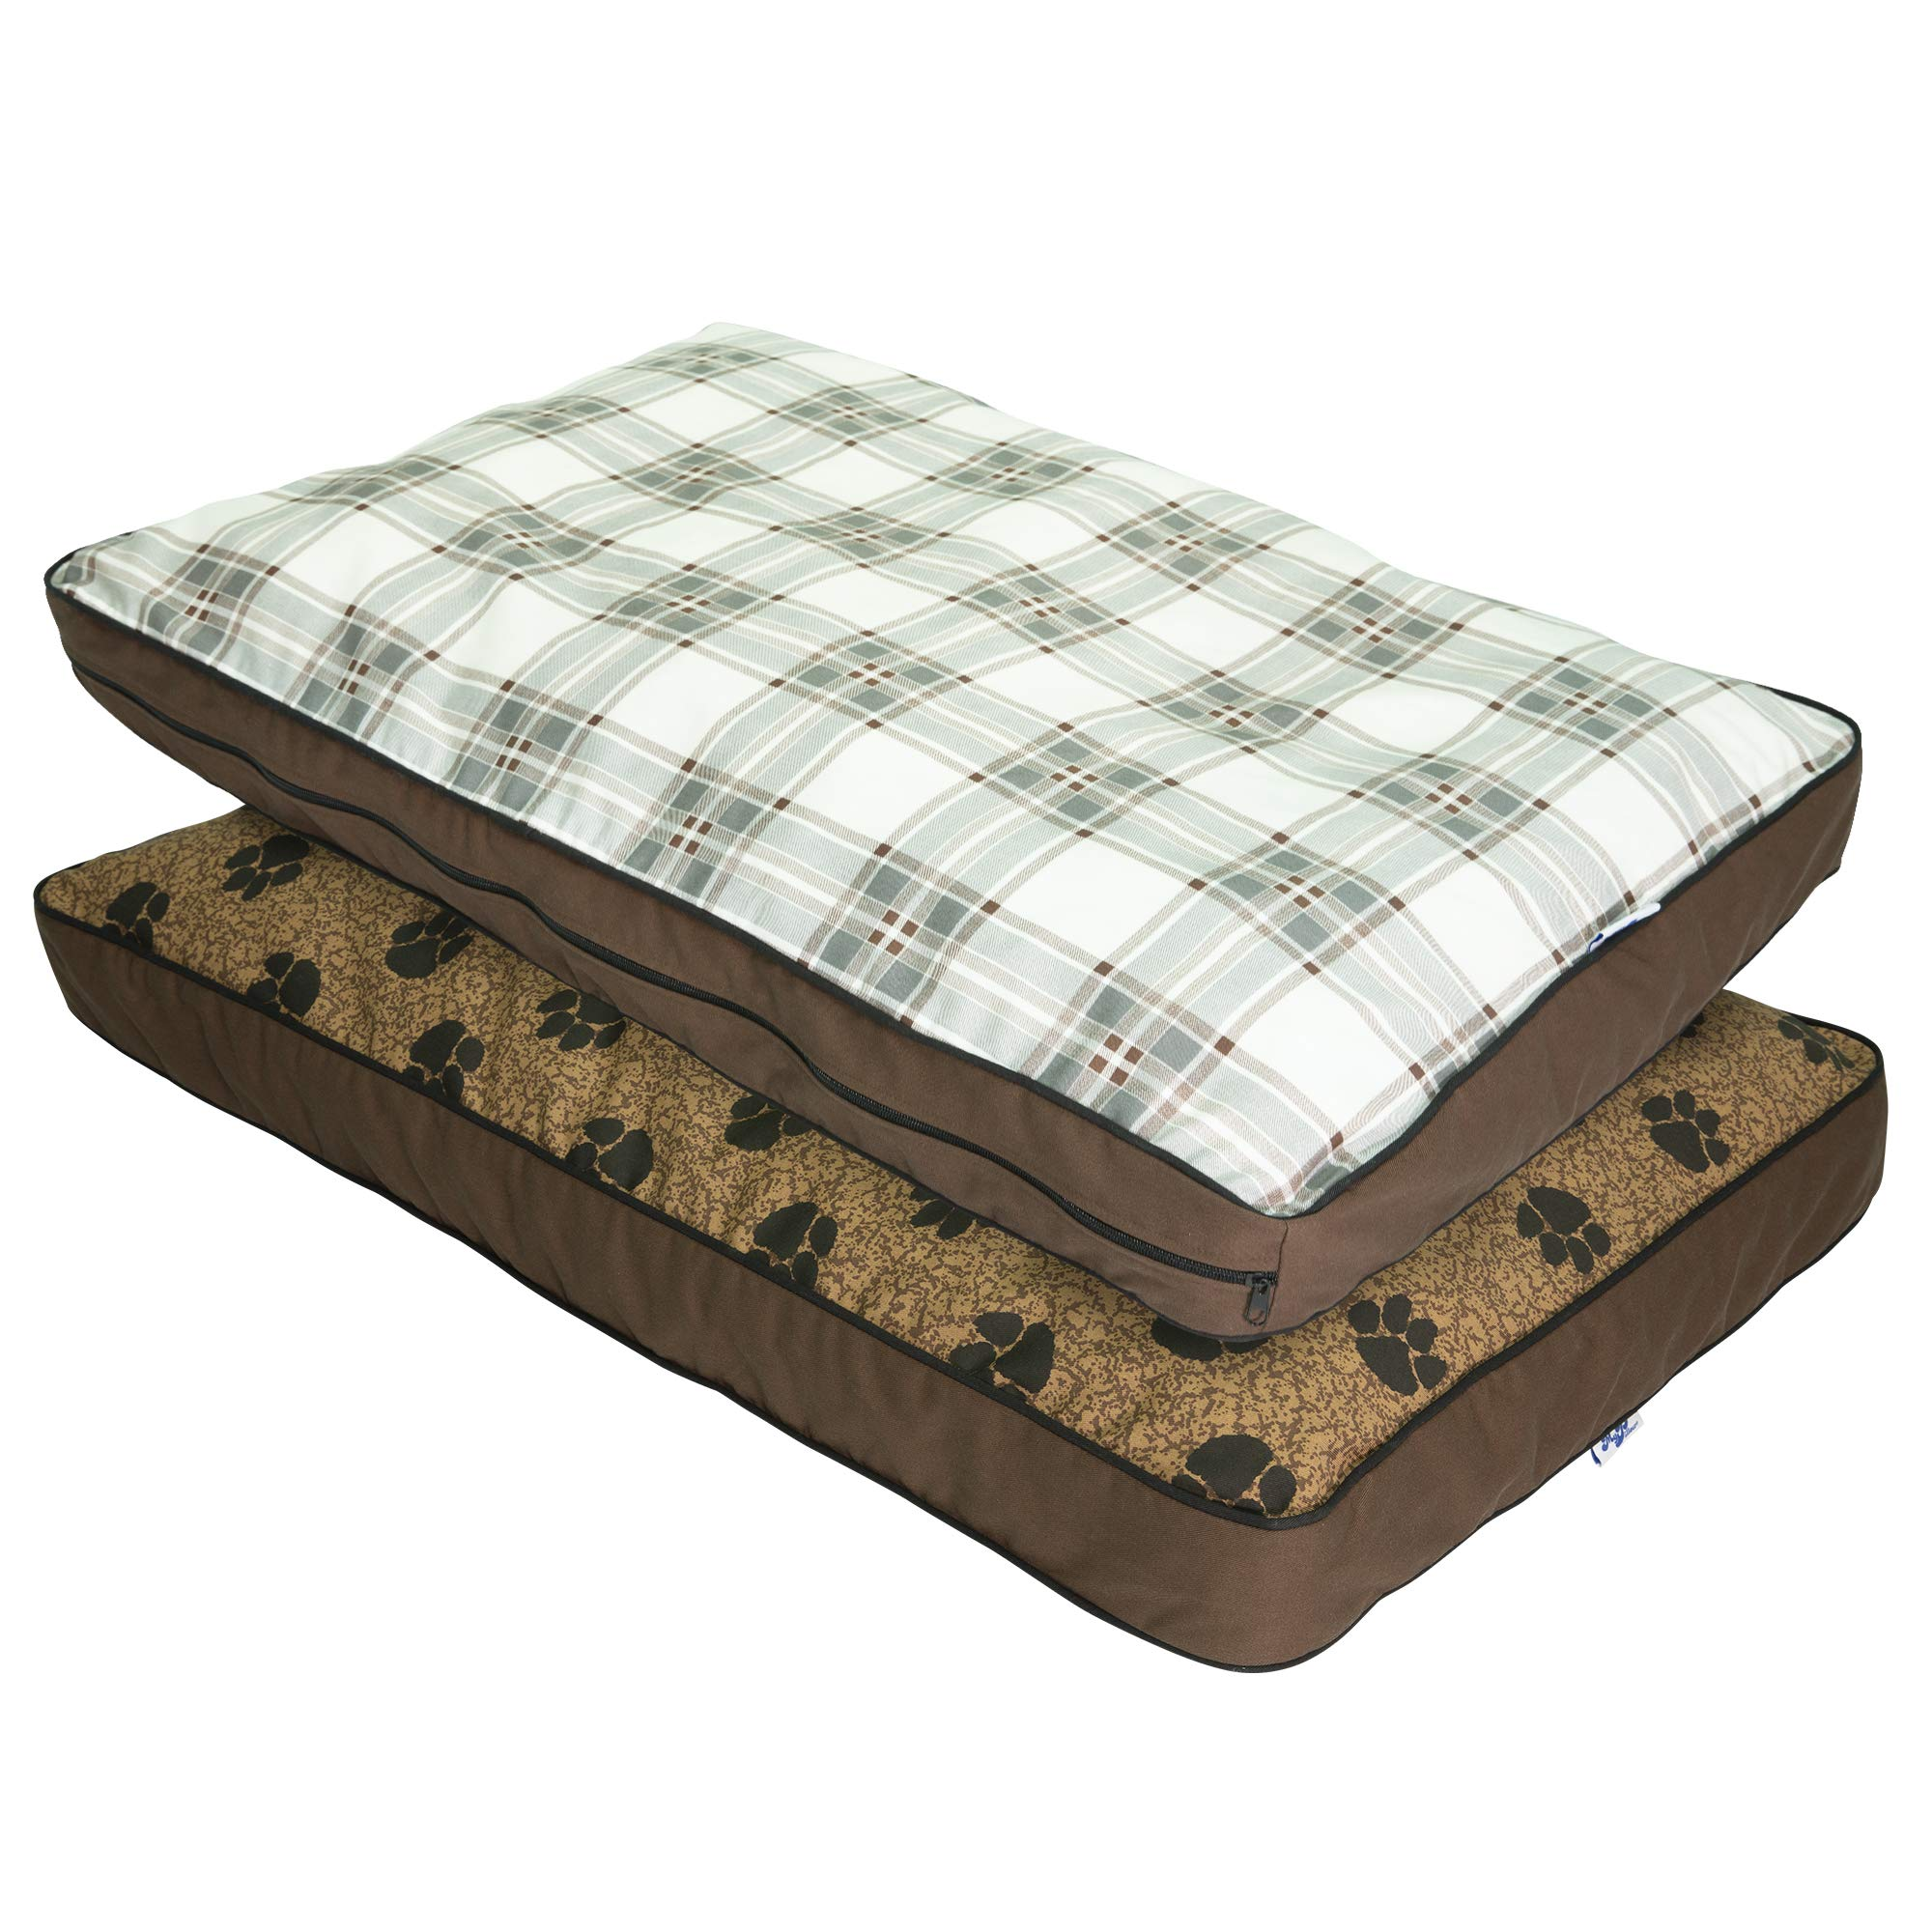 MyPillow Dog Beds, Large, Brown by MyPillow